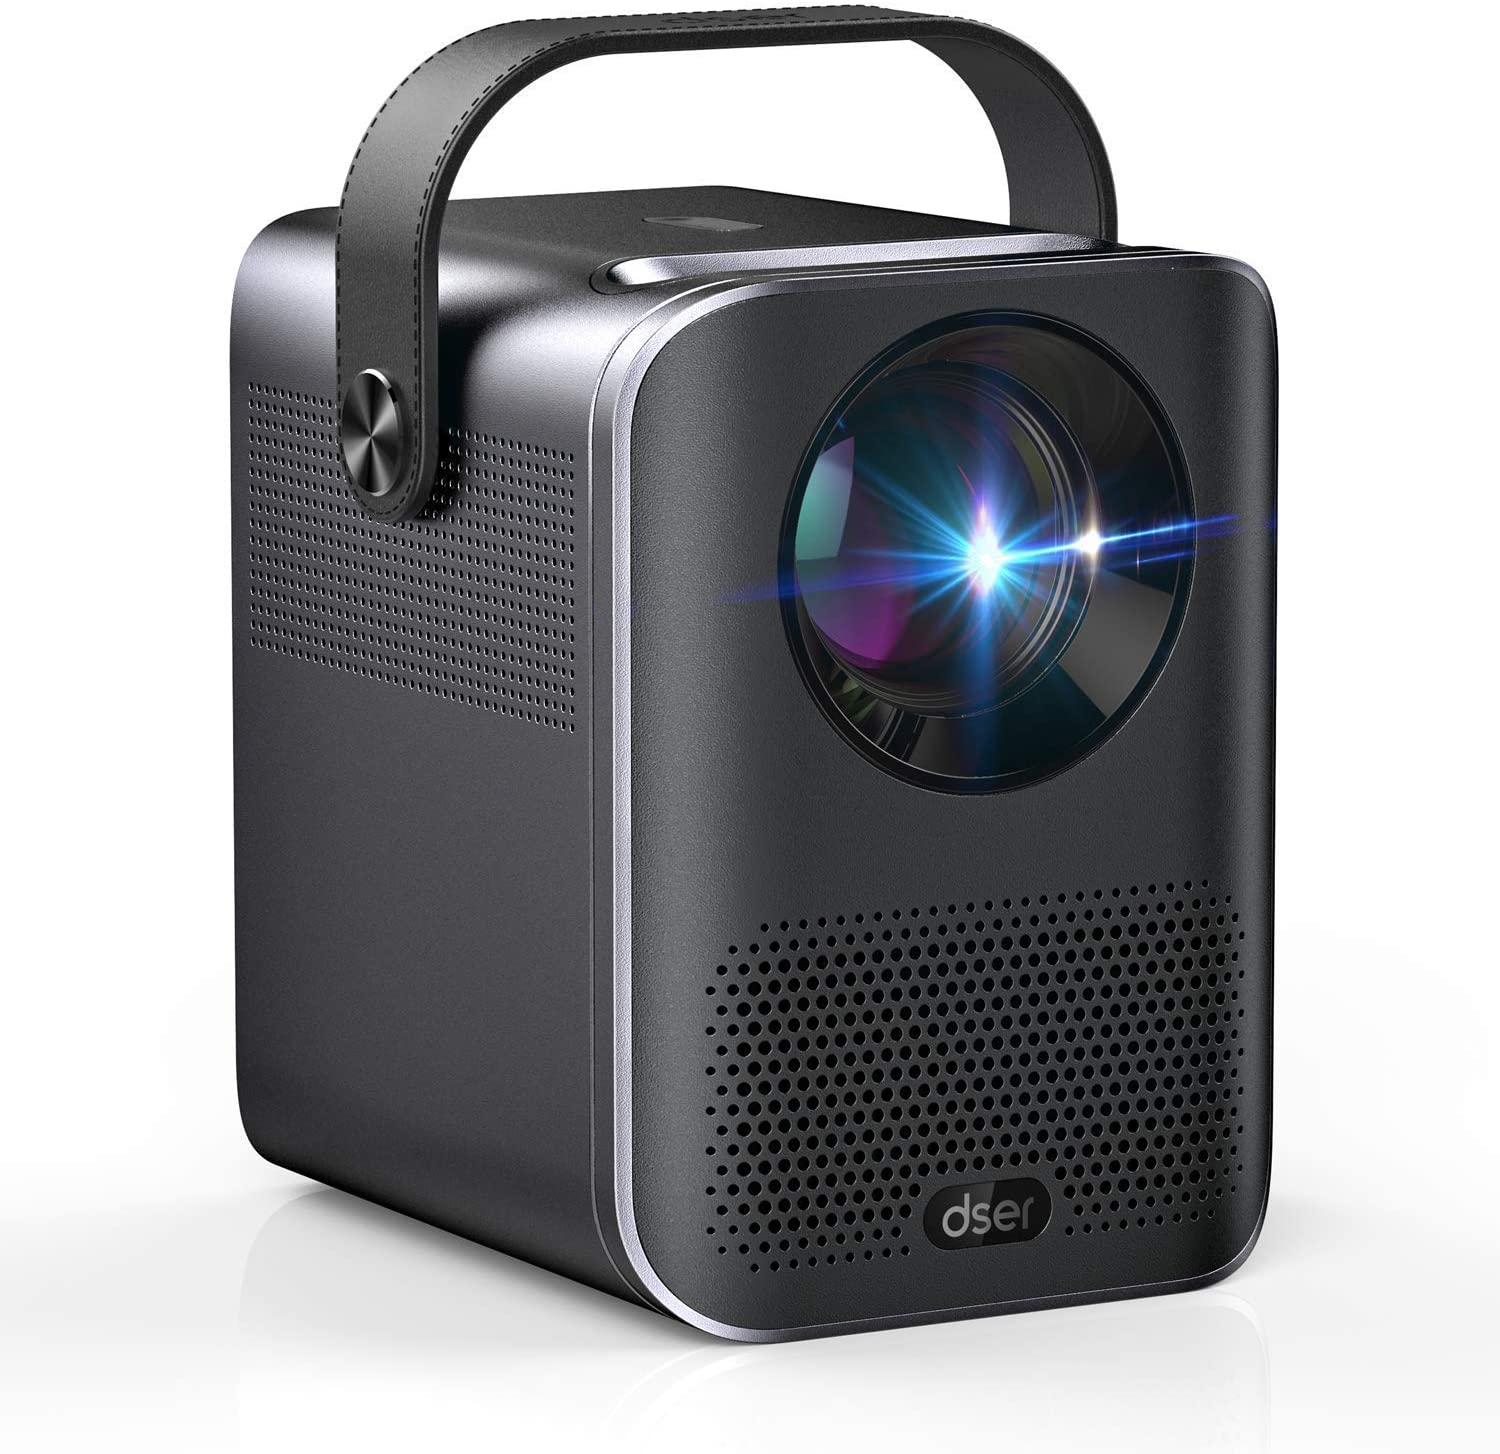 Video Projector 1080P and 160